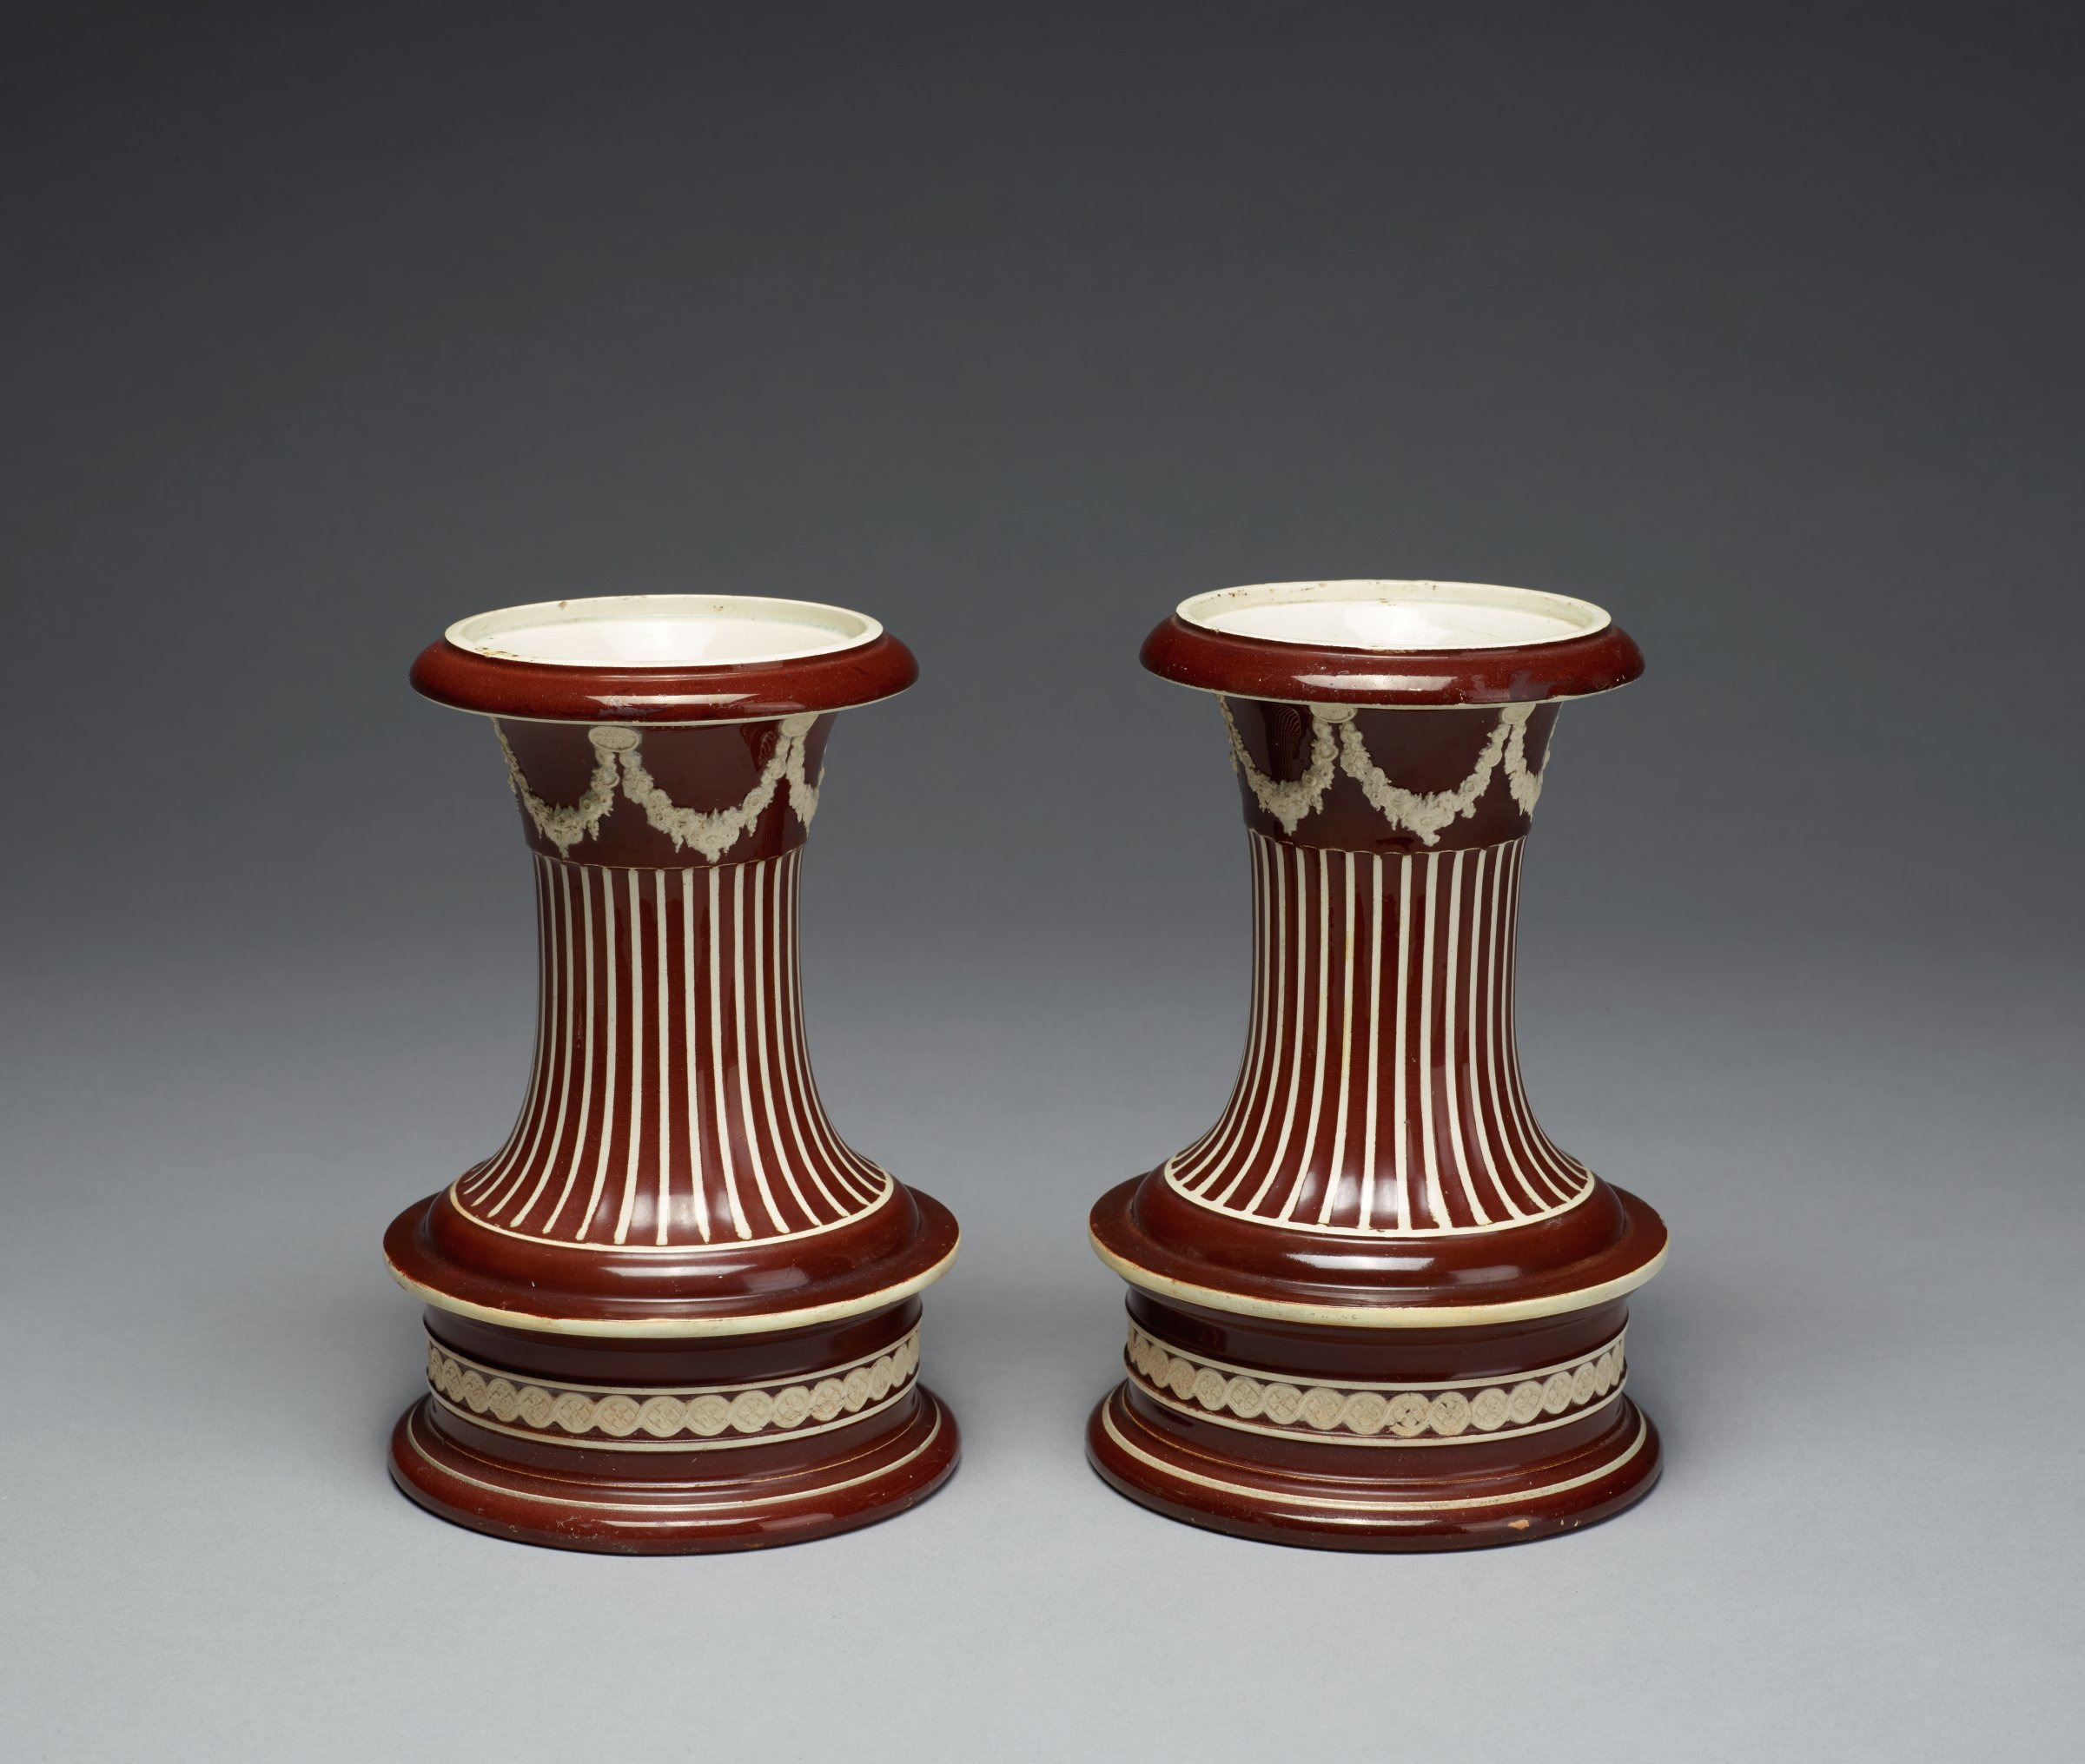 Pair of vases of pearl-glazed, white stoneware covered with a brown glaze and engine turned to reveal the white stoneware below the glaze, baluster shaped with fluting on the stem highlighted in white, with a row of applied white floral garlands suspended by medallions below the flared lip and an applied white band of repeating medallion motifs around the base, the covers are missing.